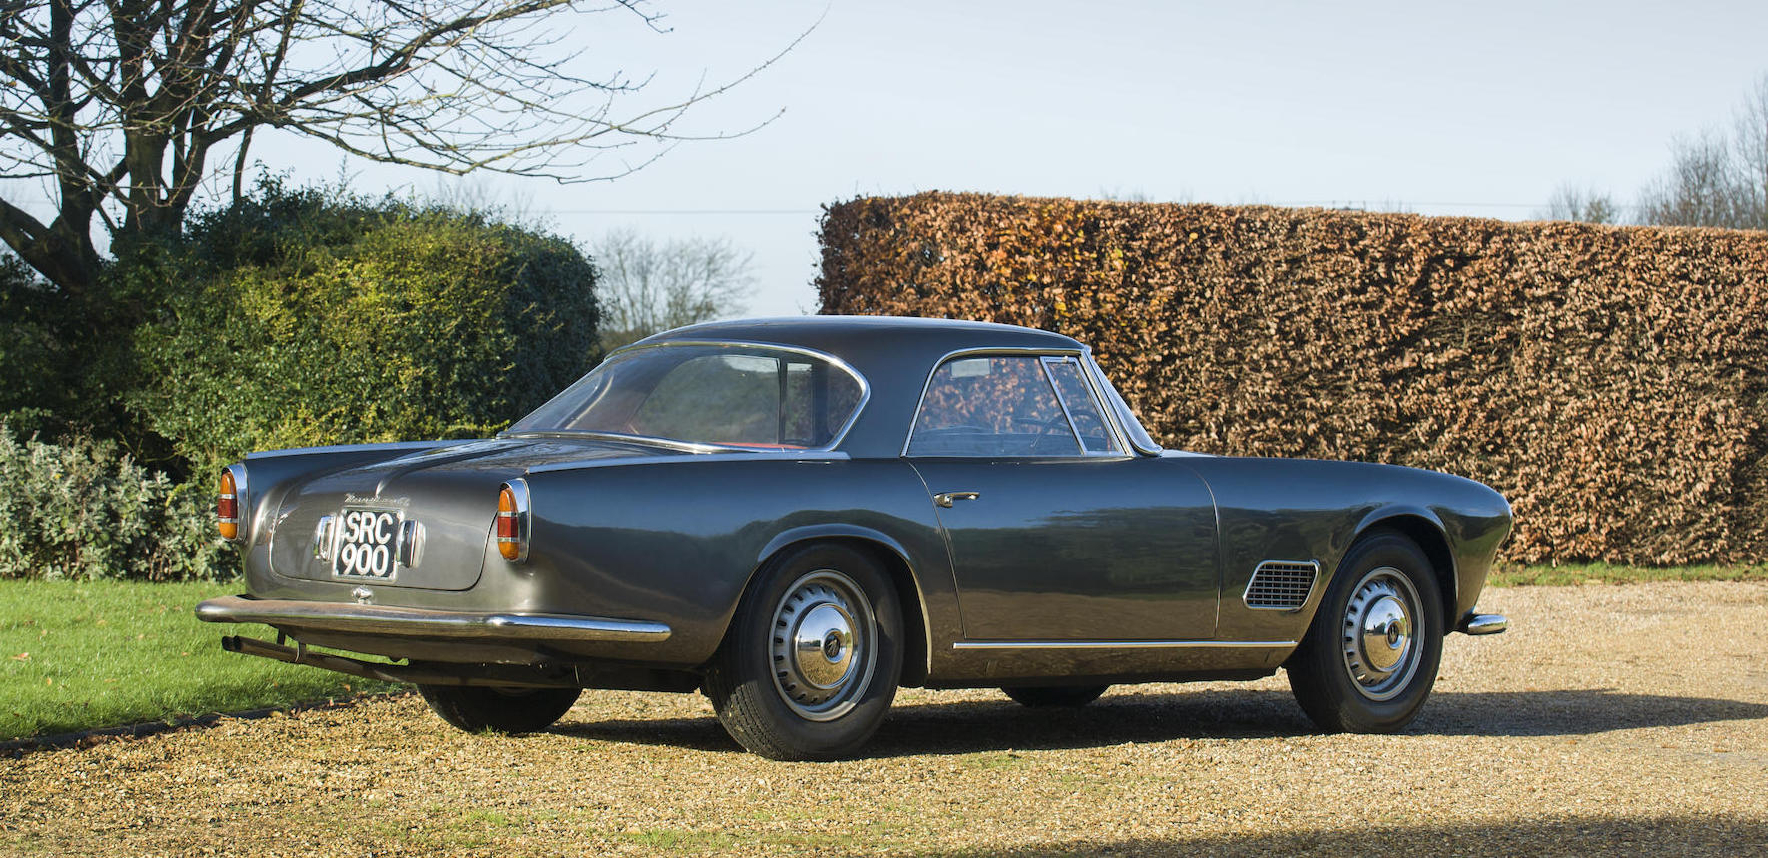 The Maserati 3500 GT Coupé has a Salisbury rear axle and Girling brakes. (Picture courtesy Bonhams).